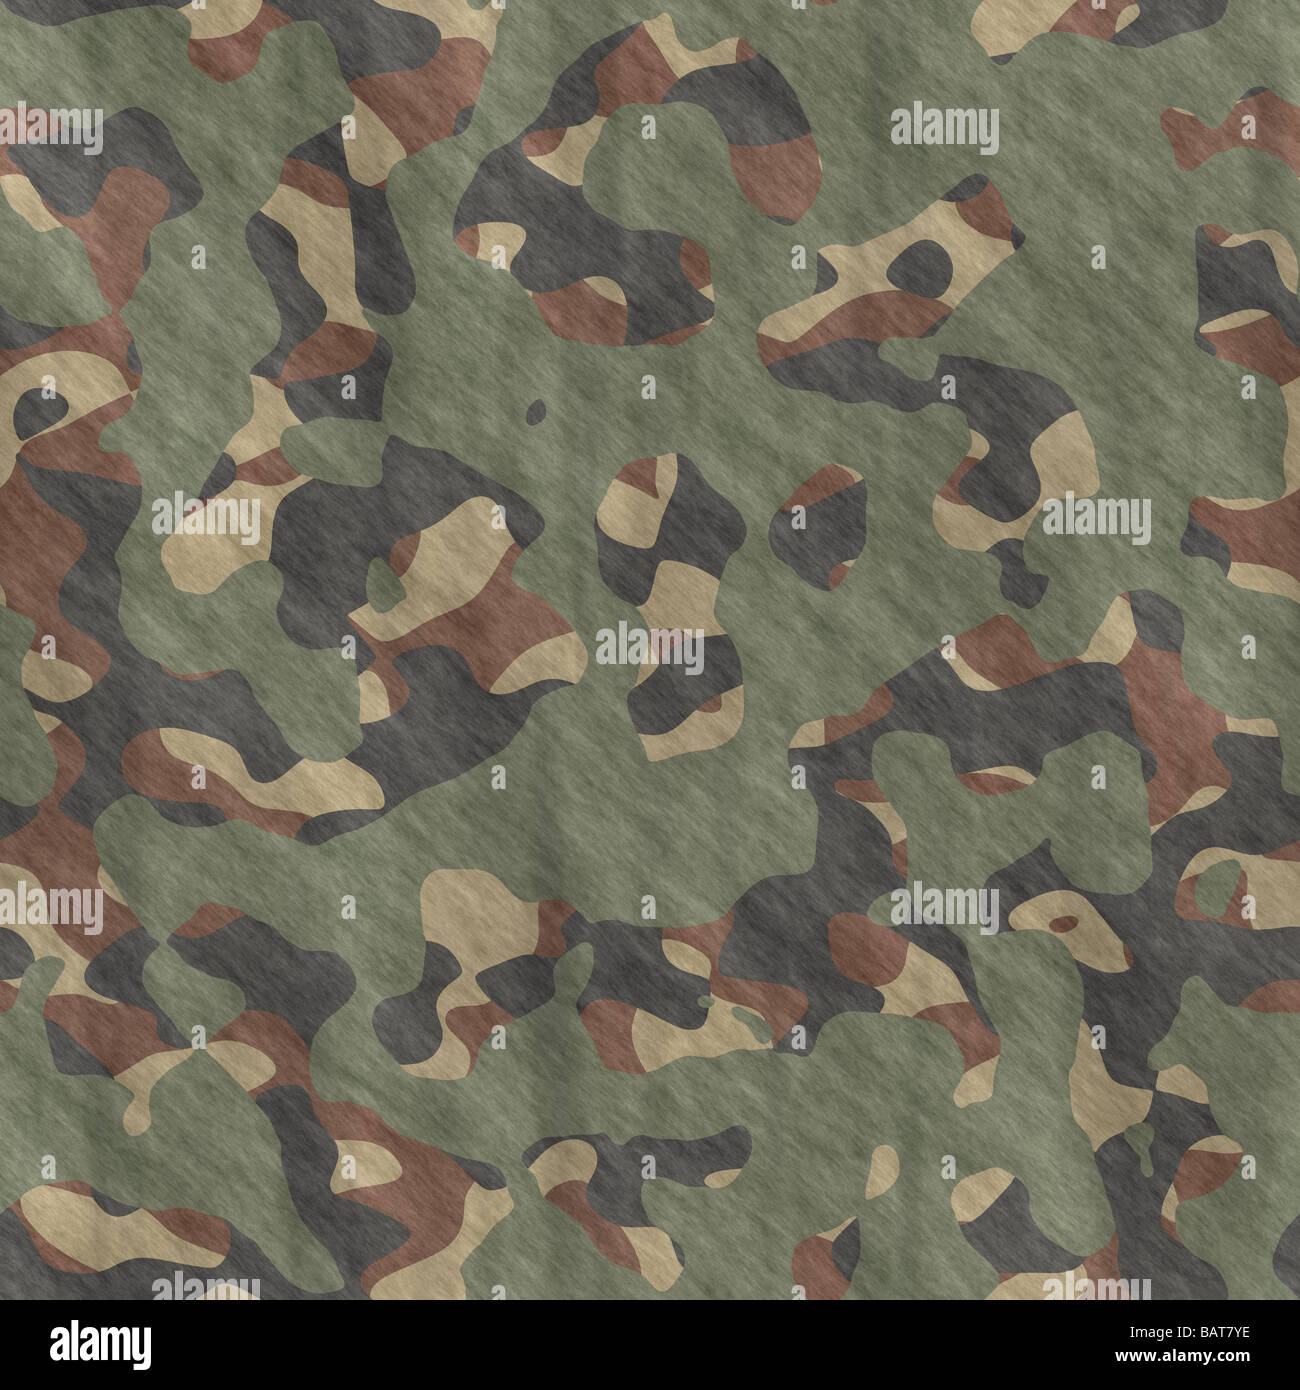 excellent image of camouflage pattern cloth or fabric - Stock Image